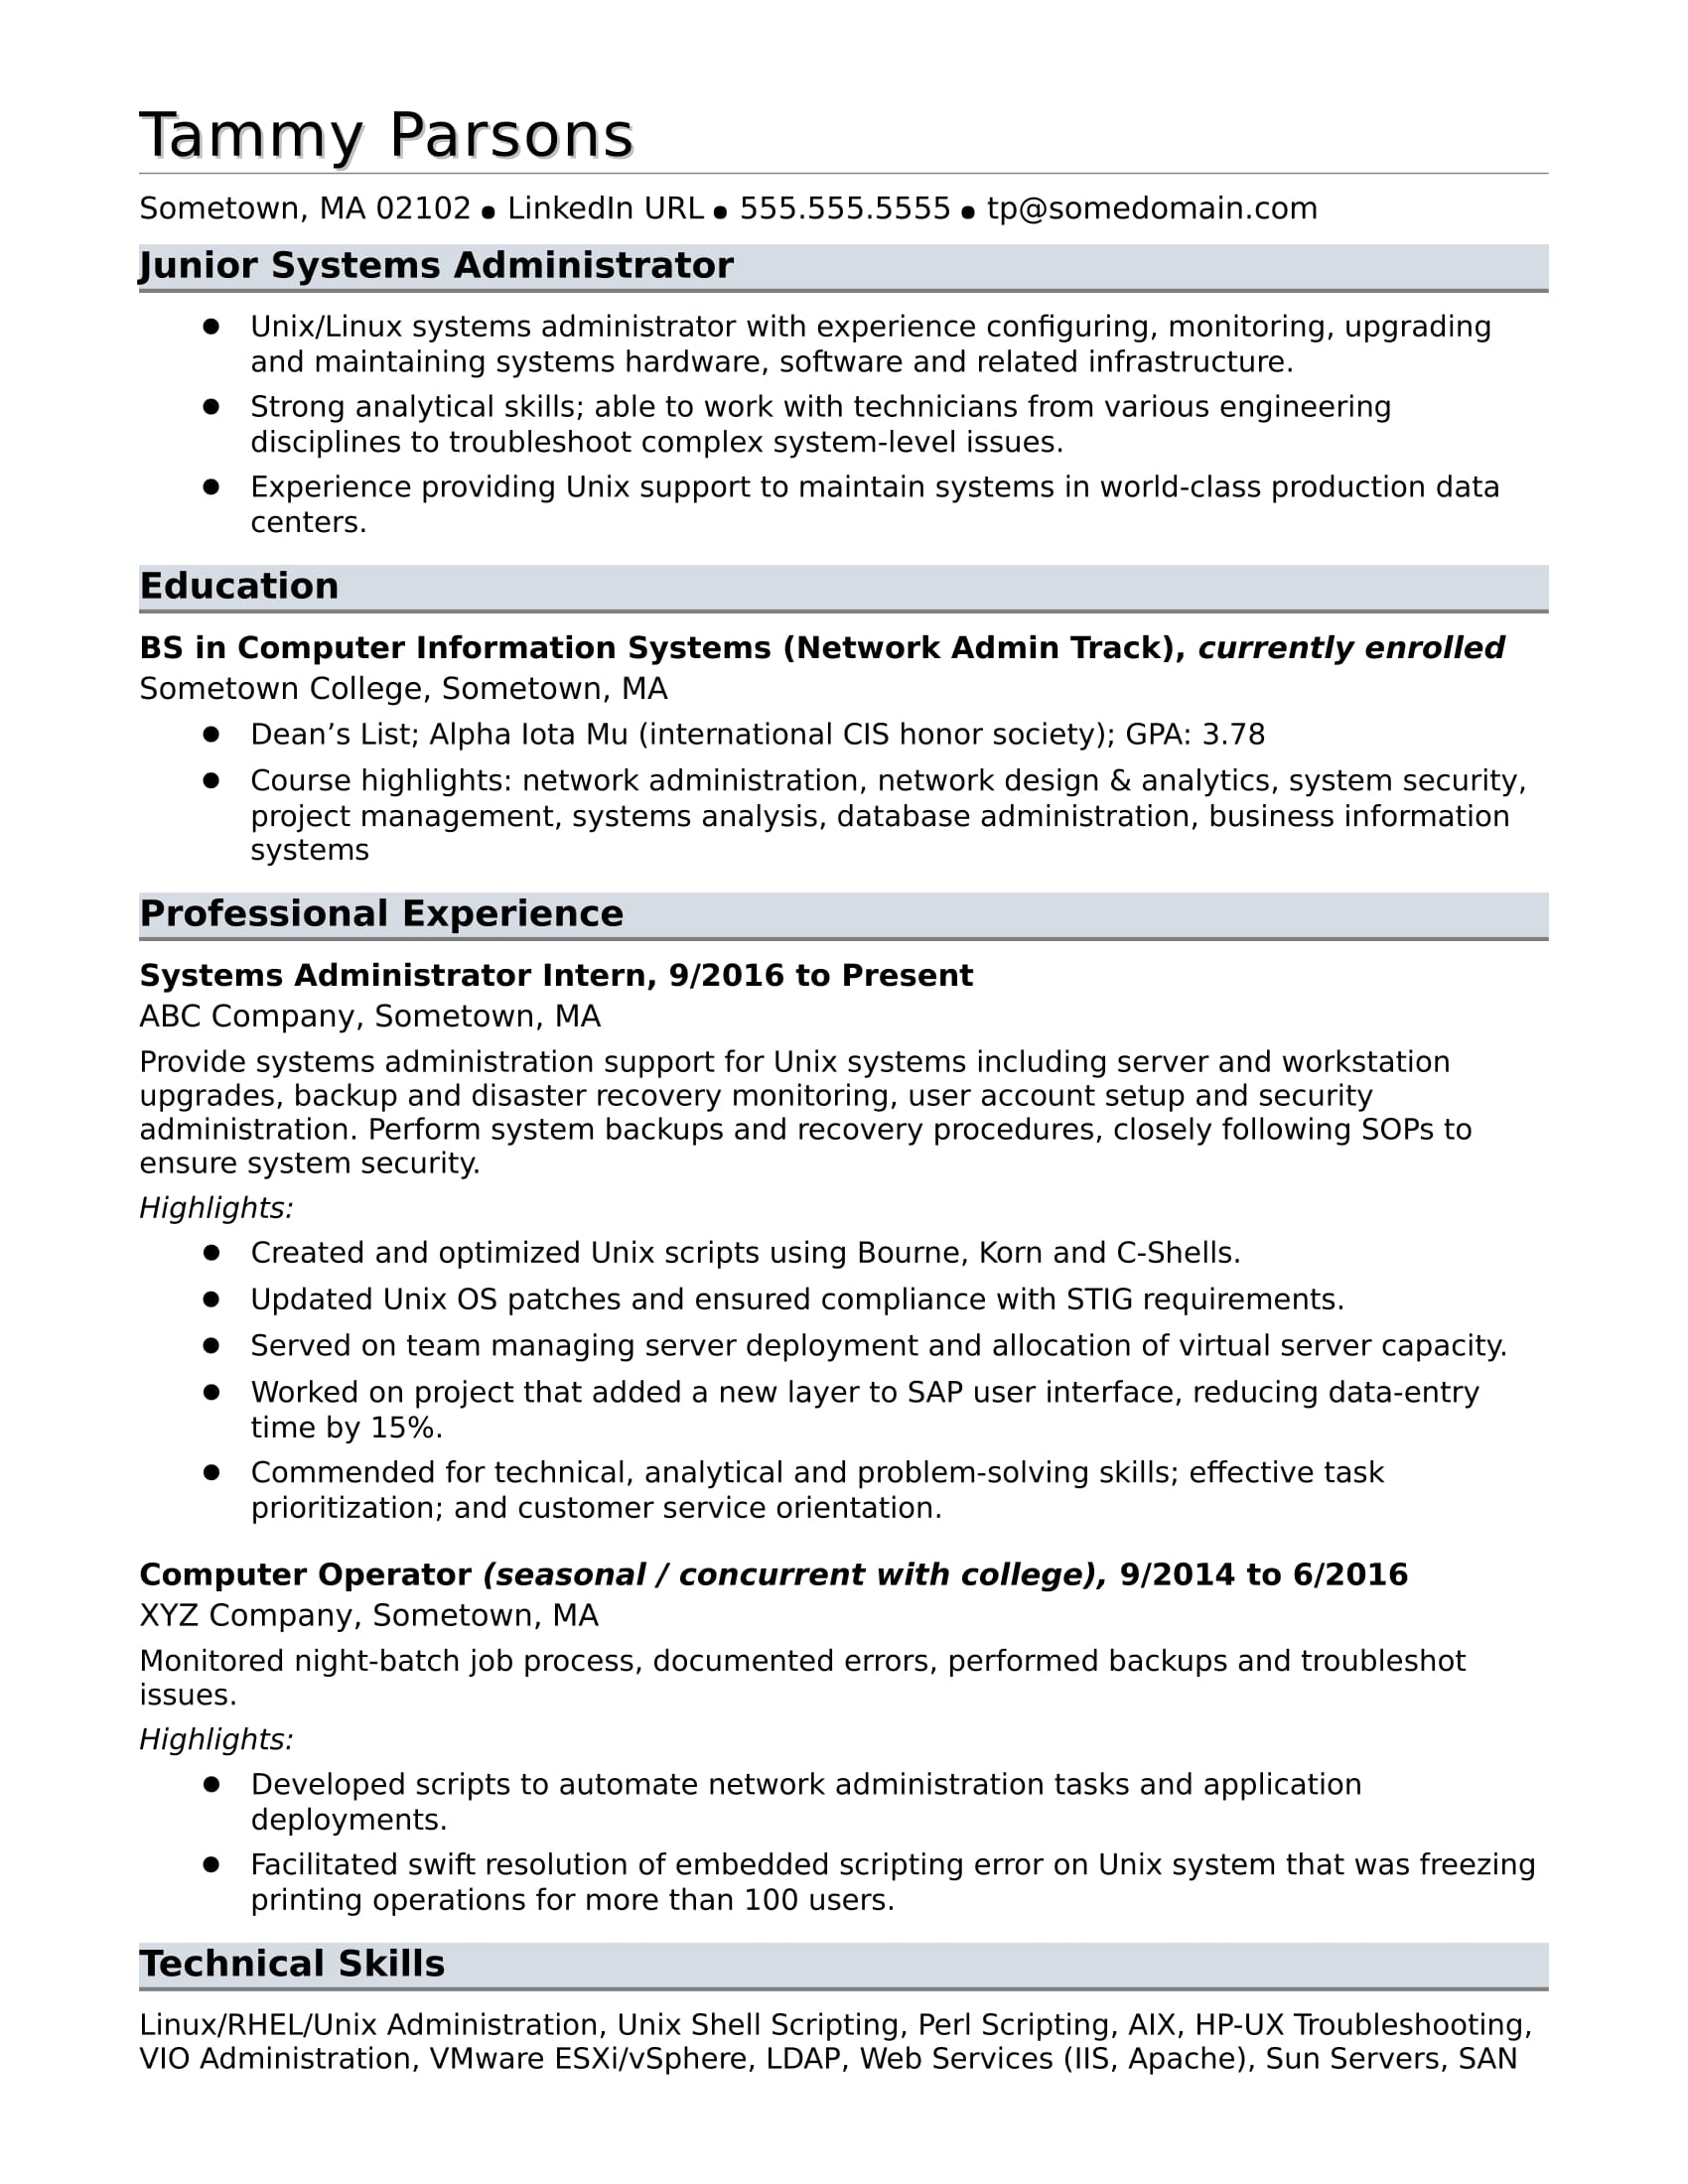 Beautiful Sample Resume For An Entry Level Systems Administrator Regard To System Administrator Resume Sample